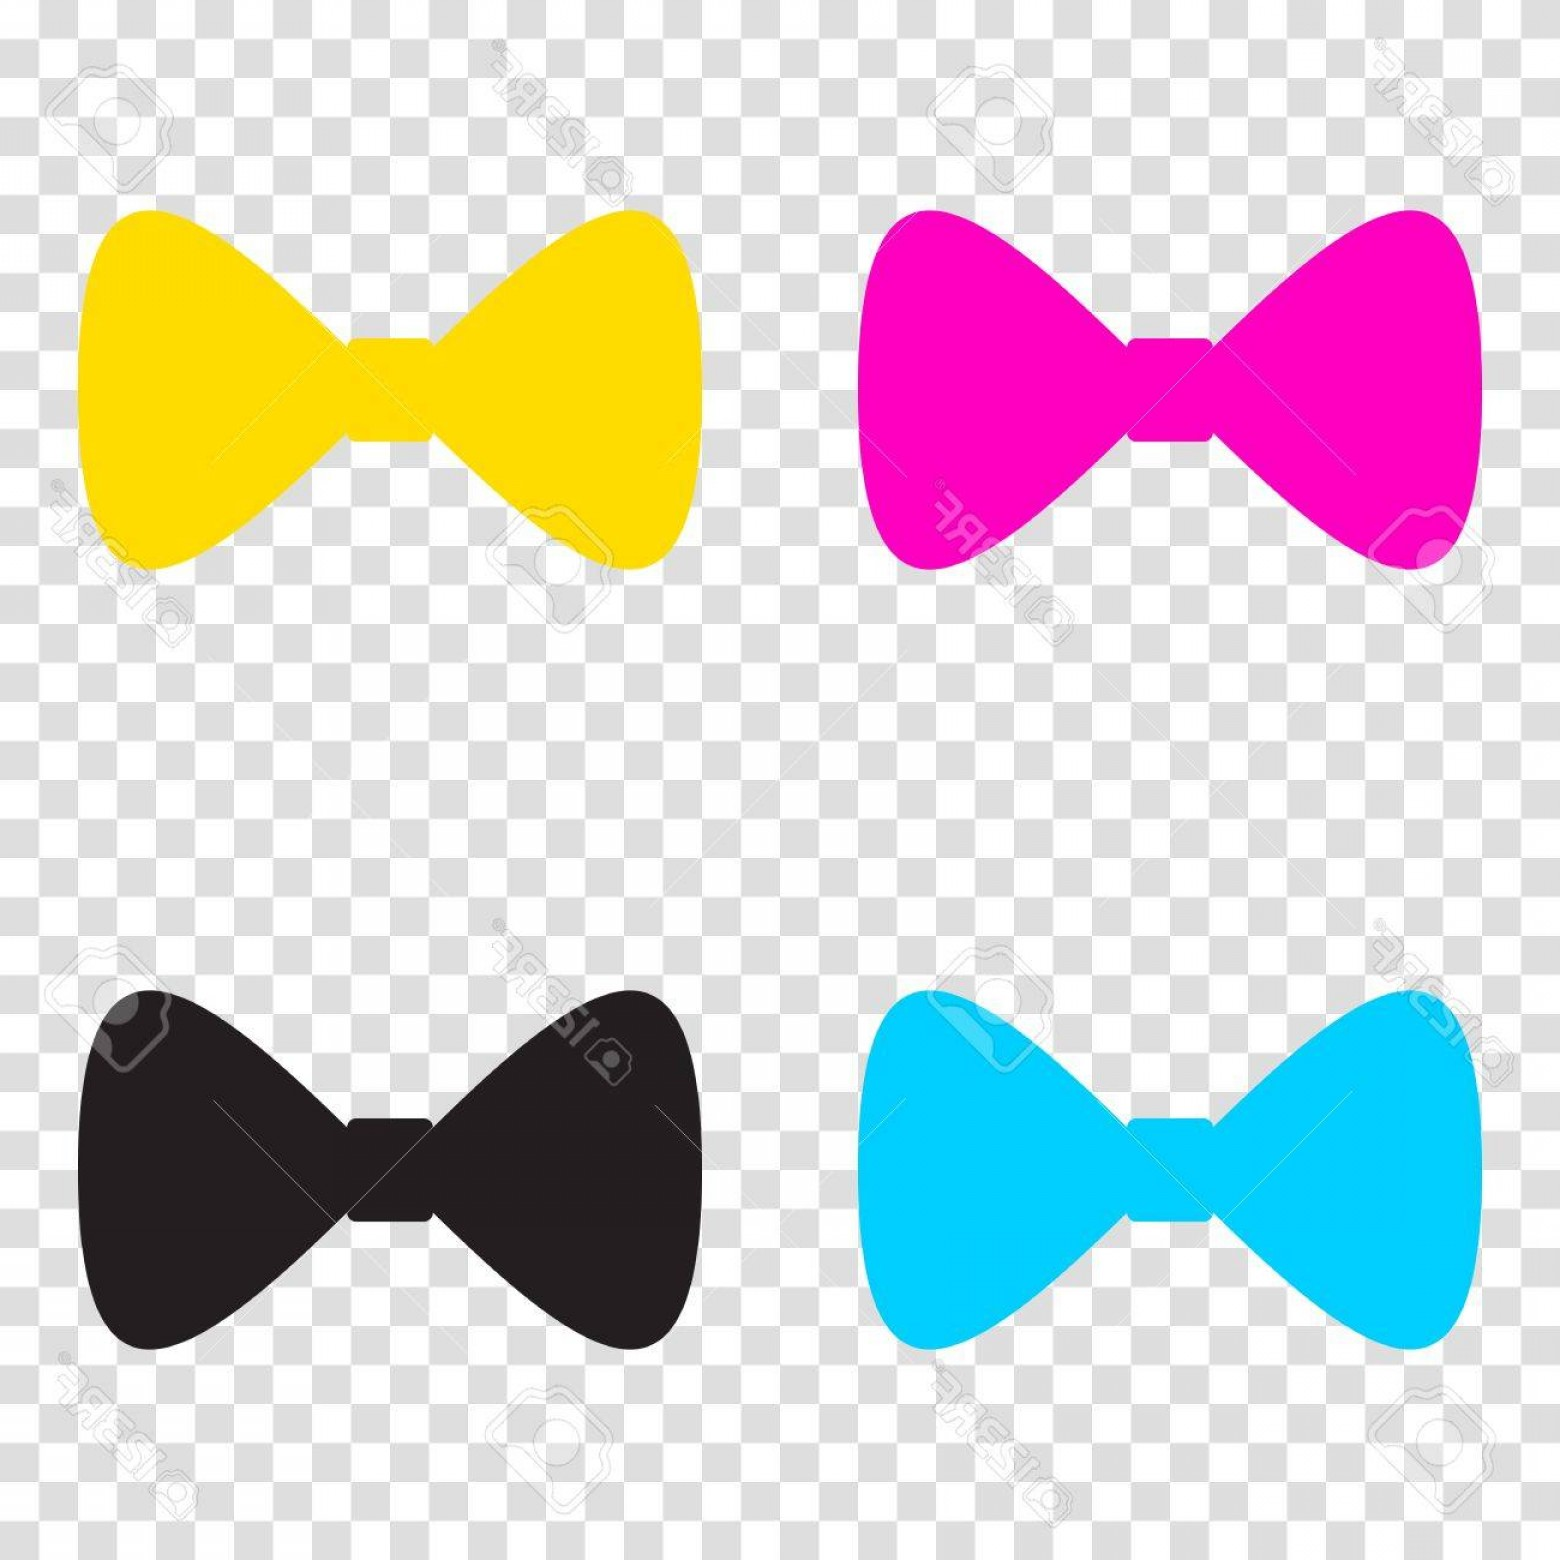 Bow Tie Vector Graphic Transparent: Photostock Vector Bow Tie Icon Cmyk Icons On Transparent Background Cyan Magenta Yellow Key Black